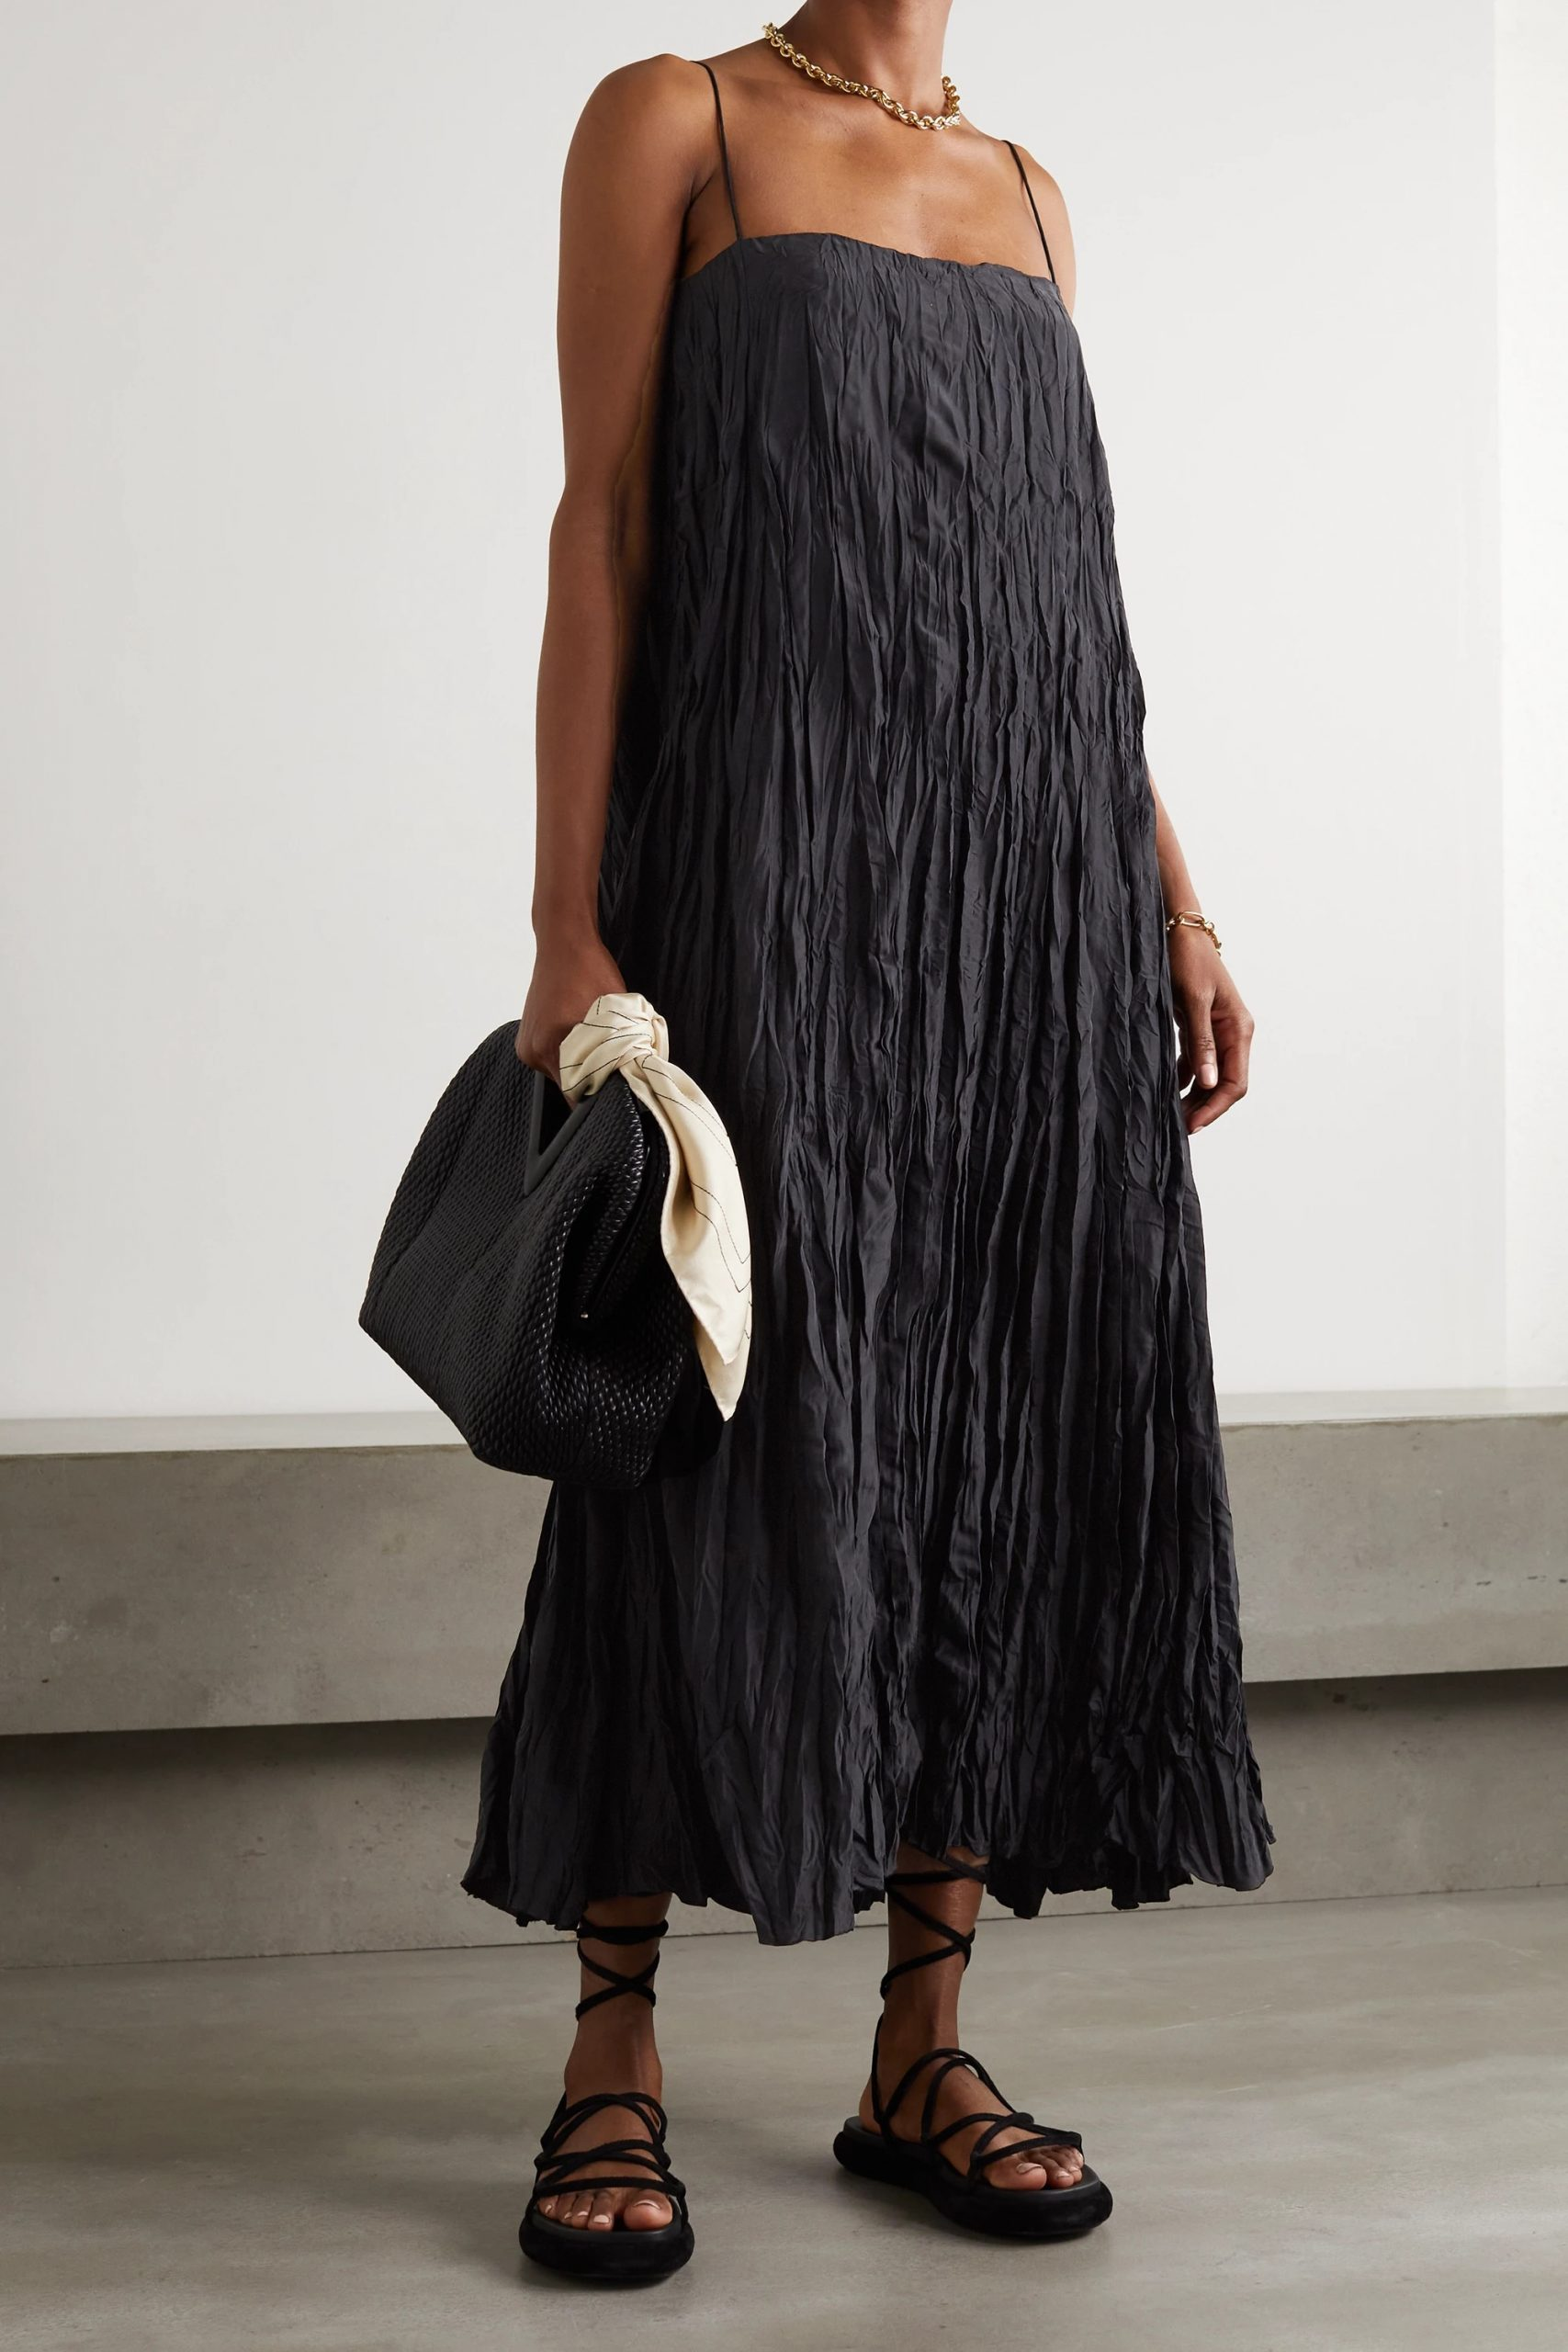 How to style your maxidress for date nights